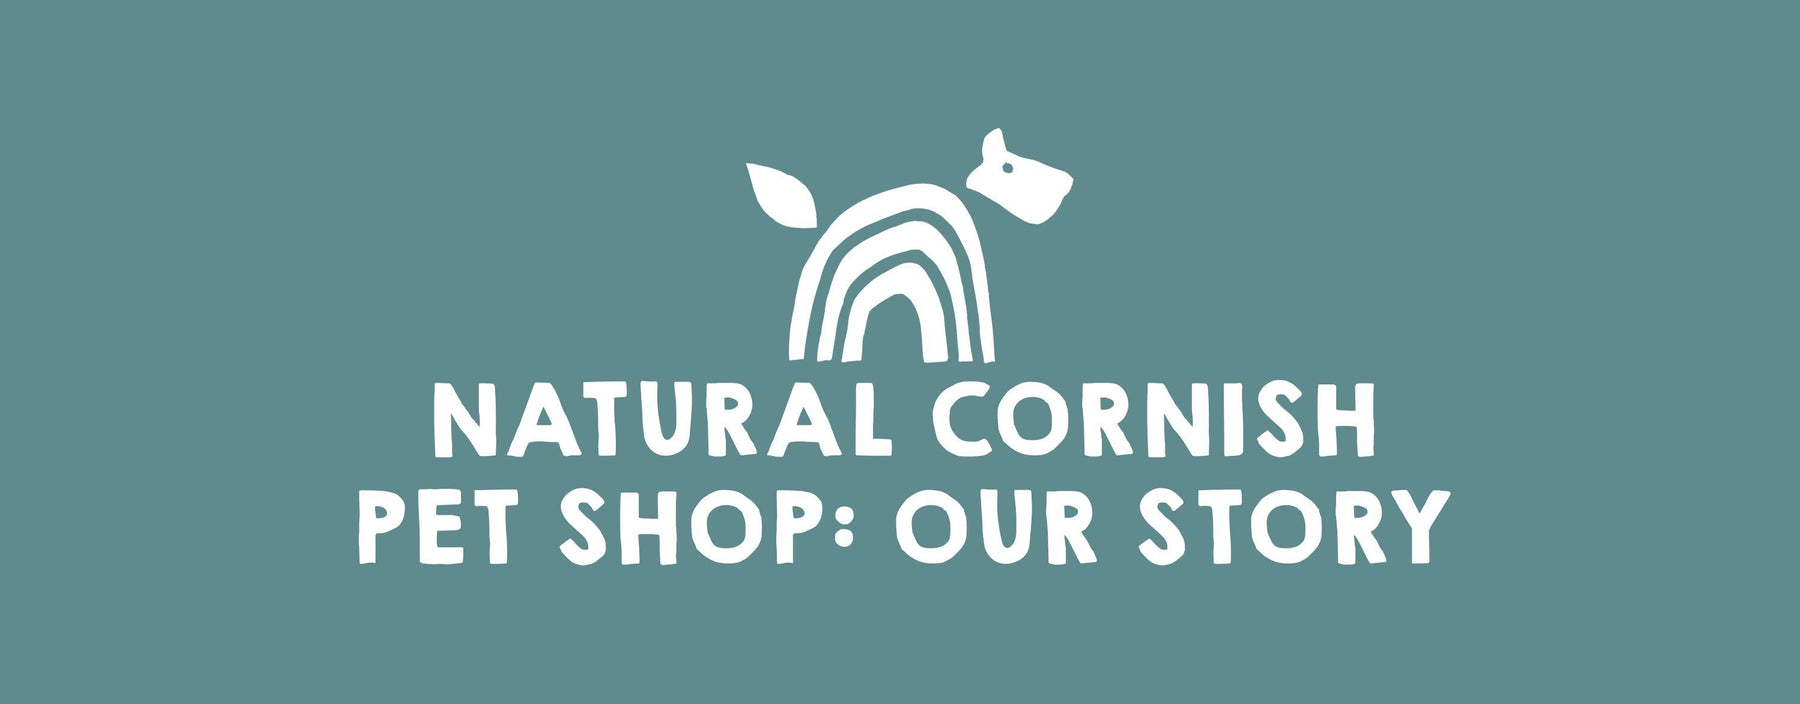 Natural Cornish Pet: Our Story